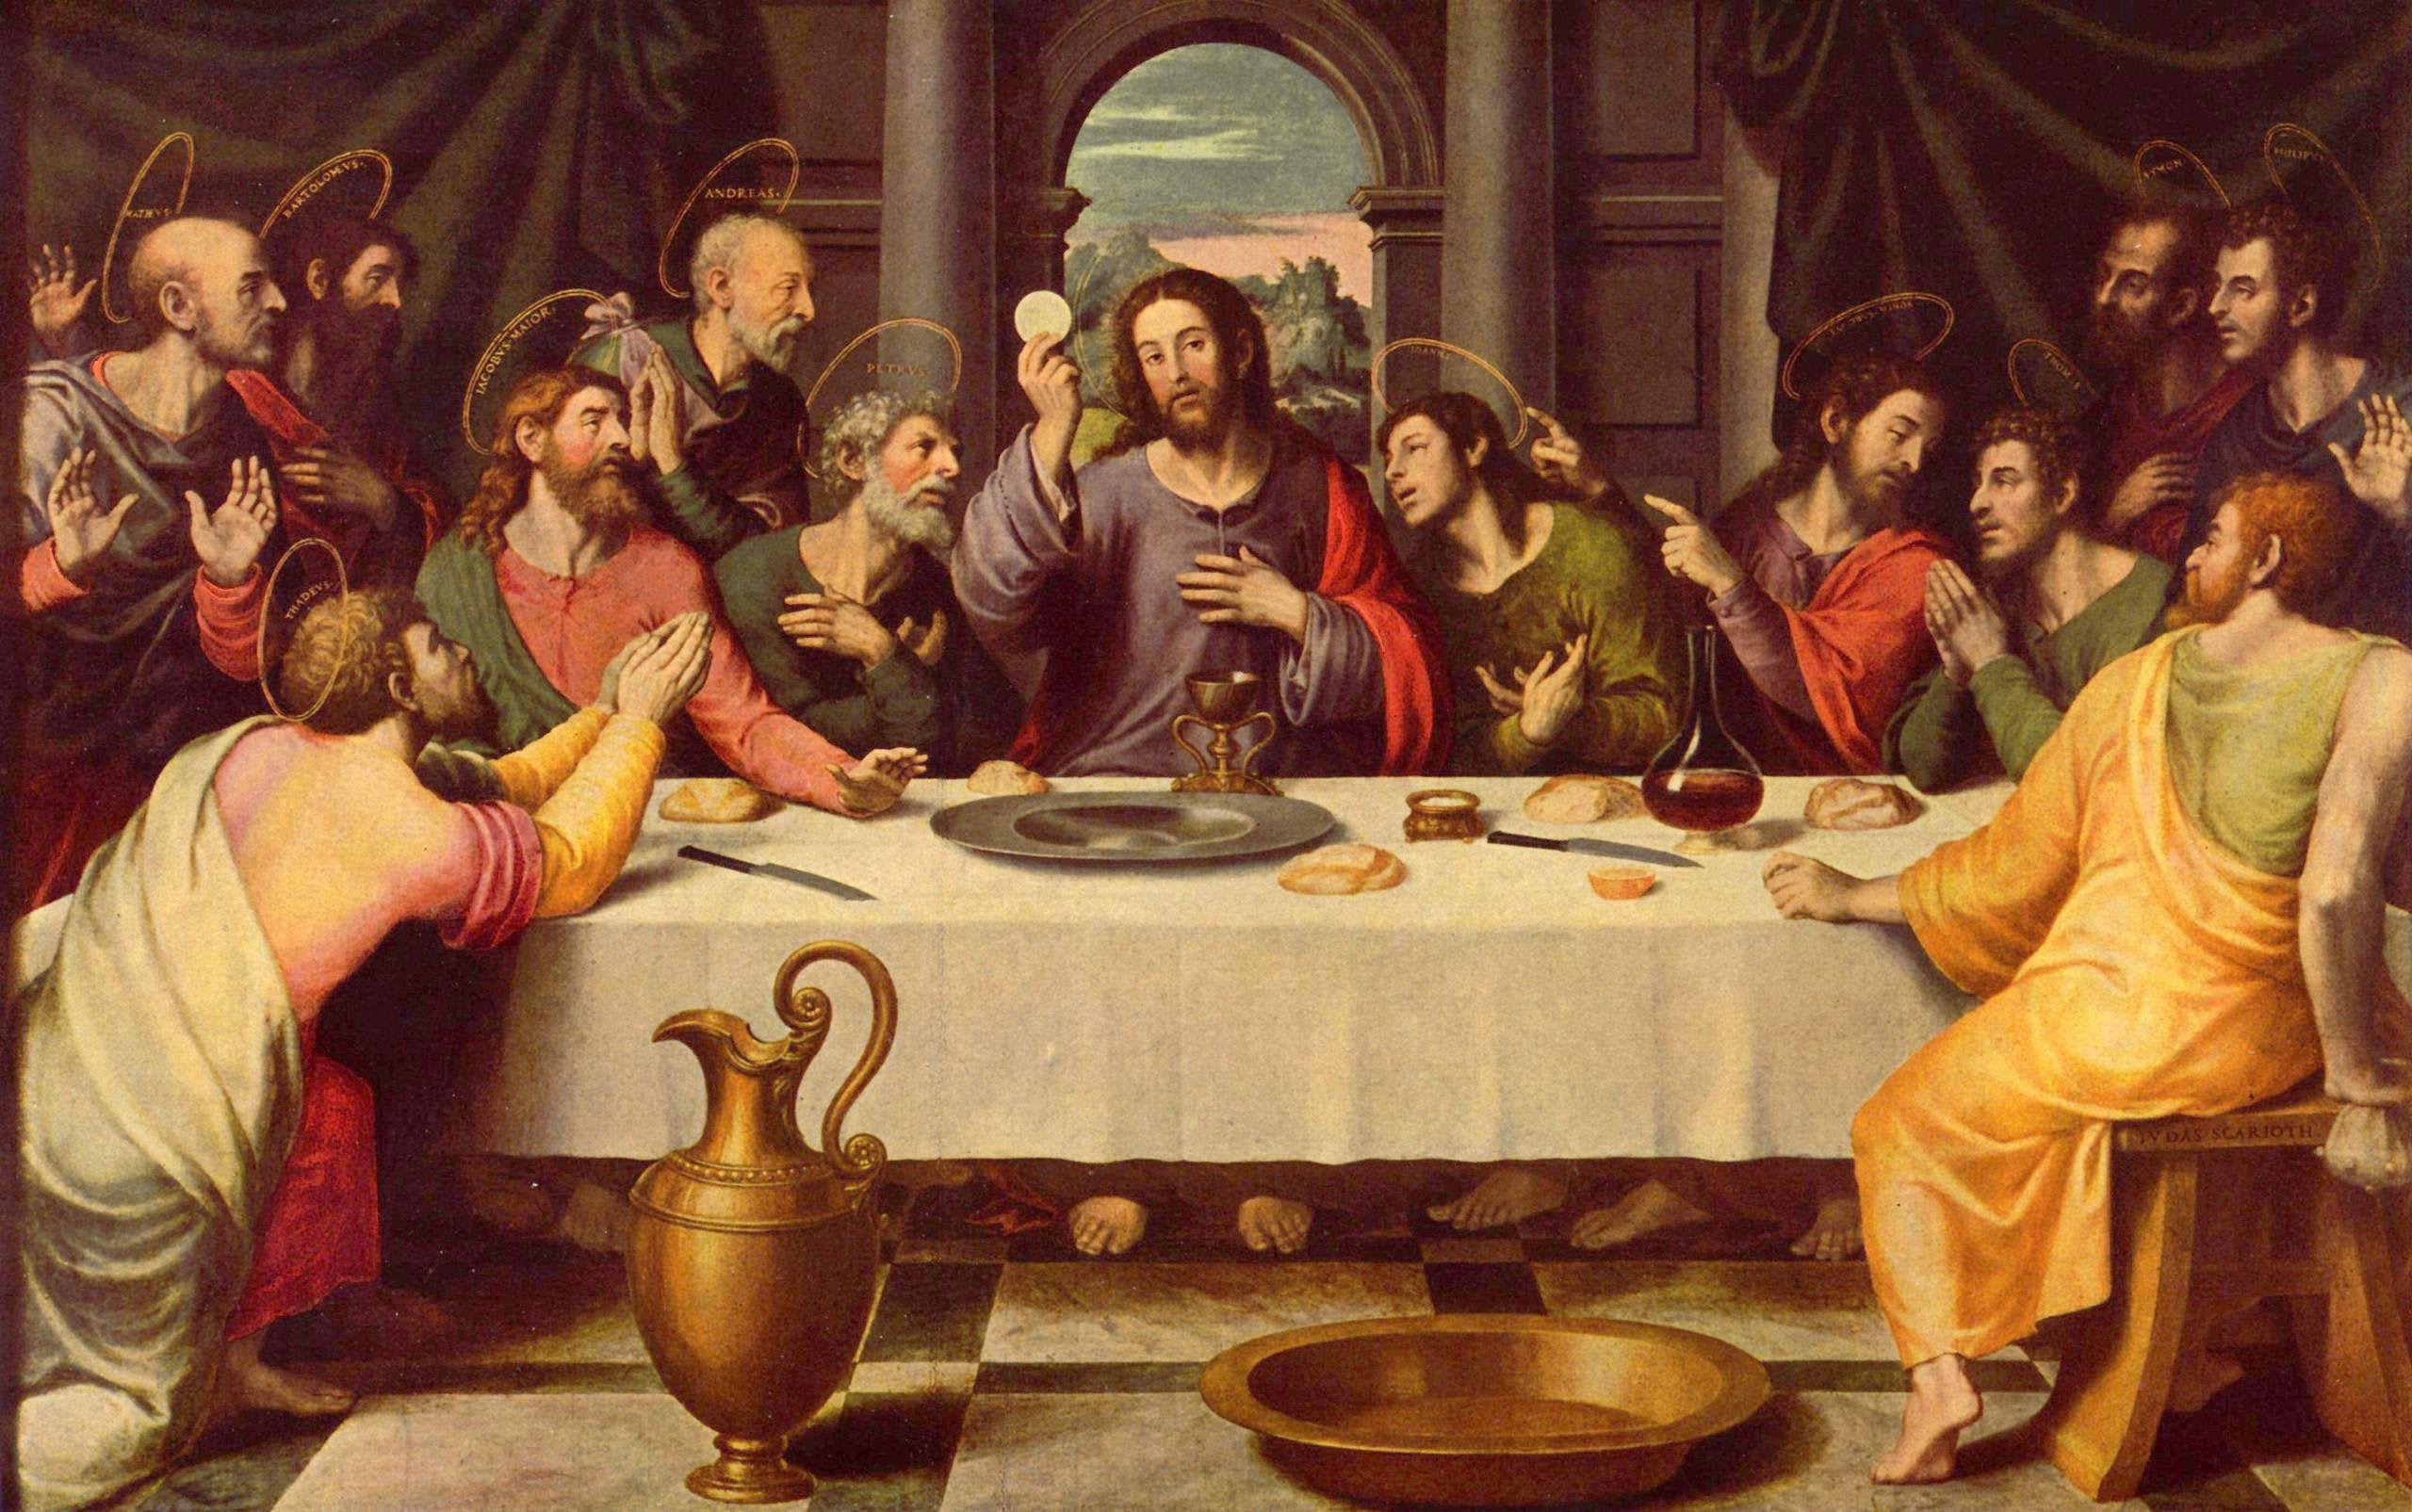 image maundy thursday last supper img 21735